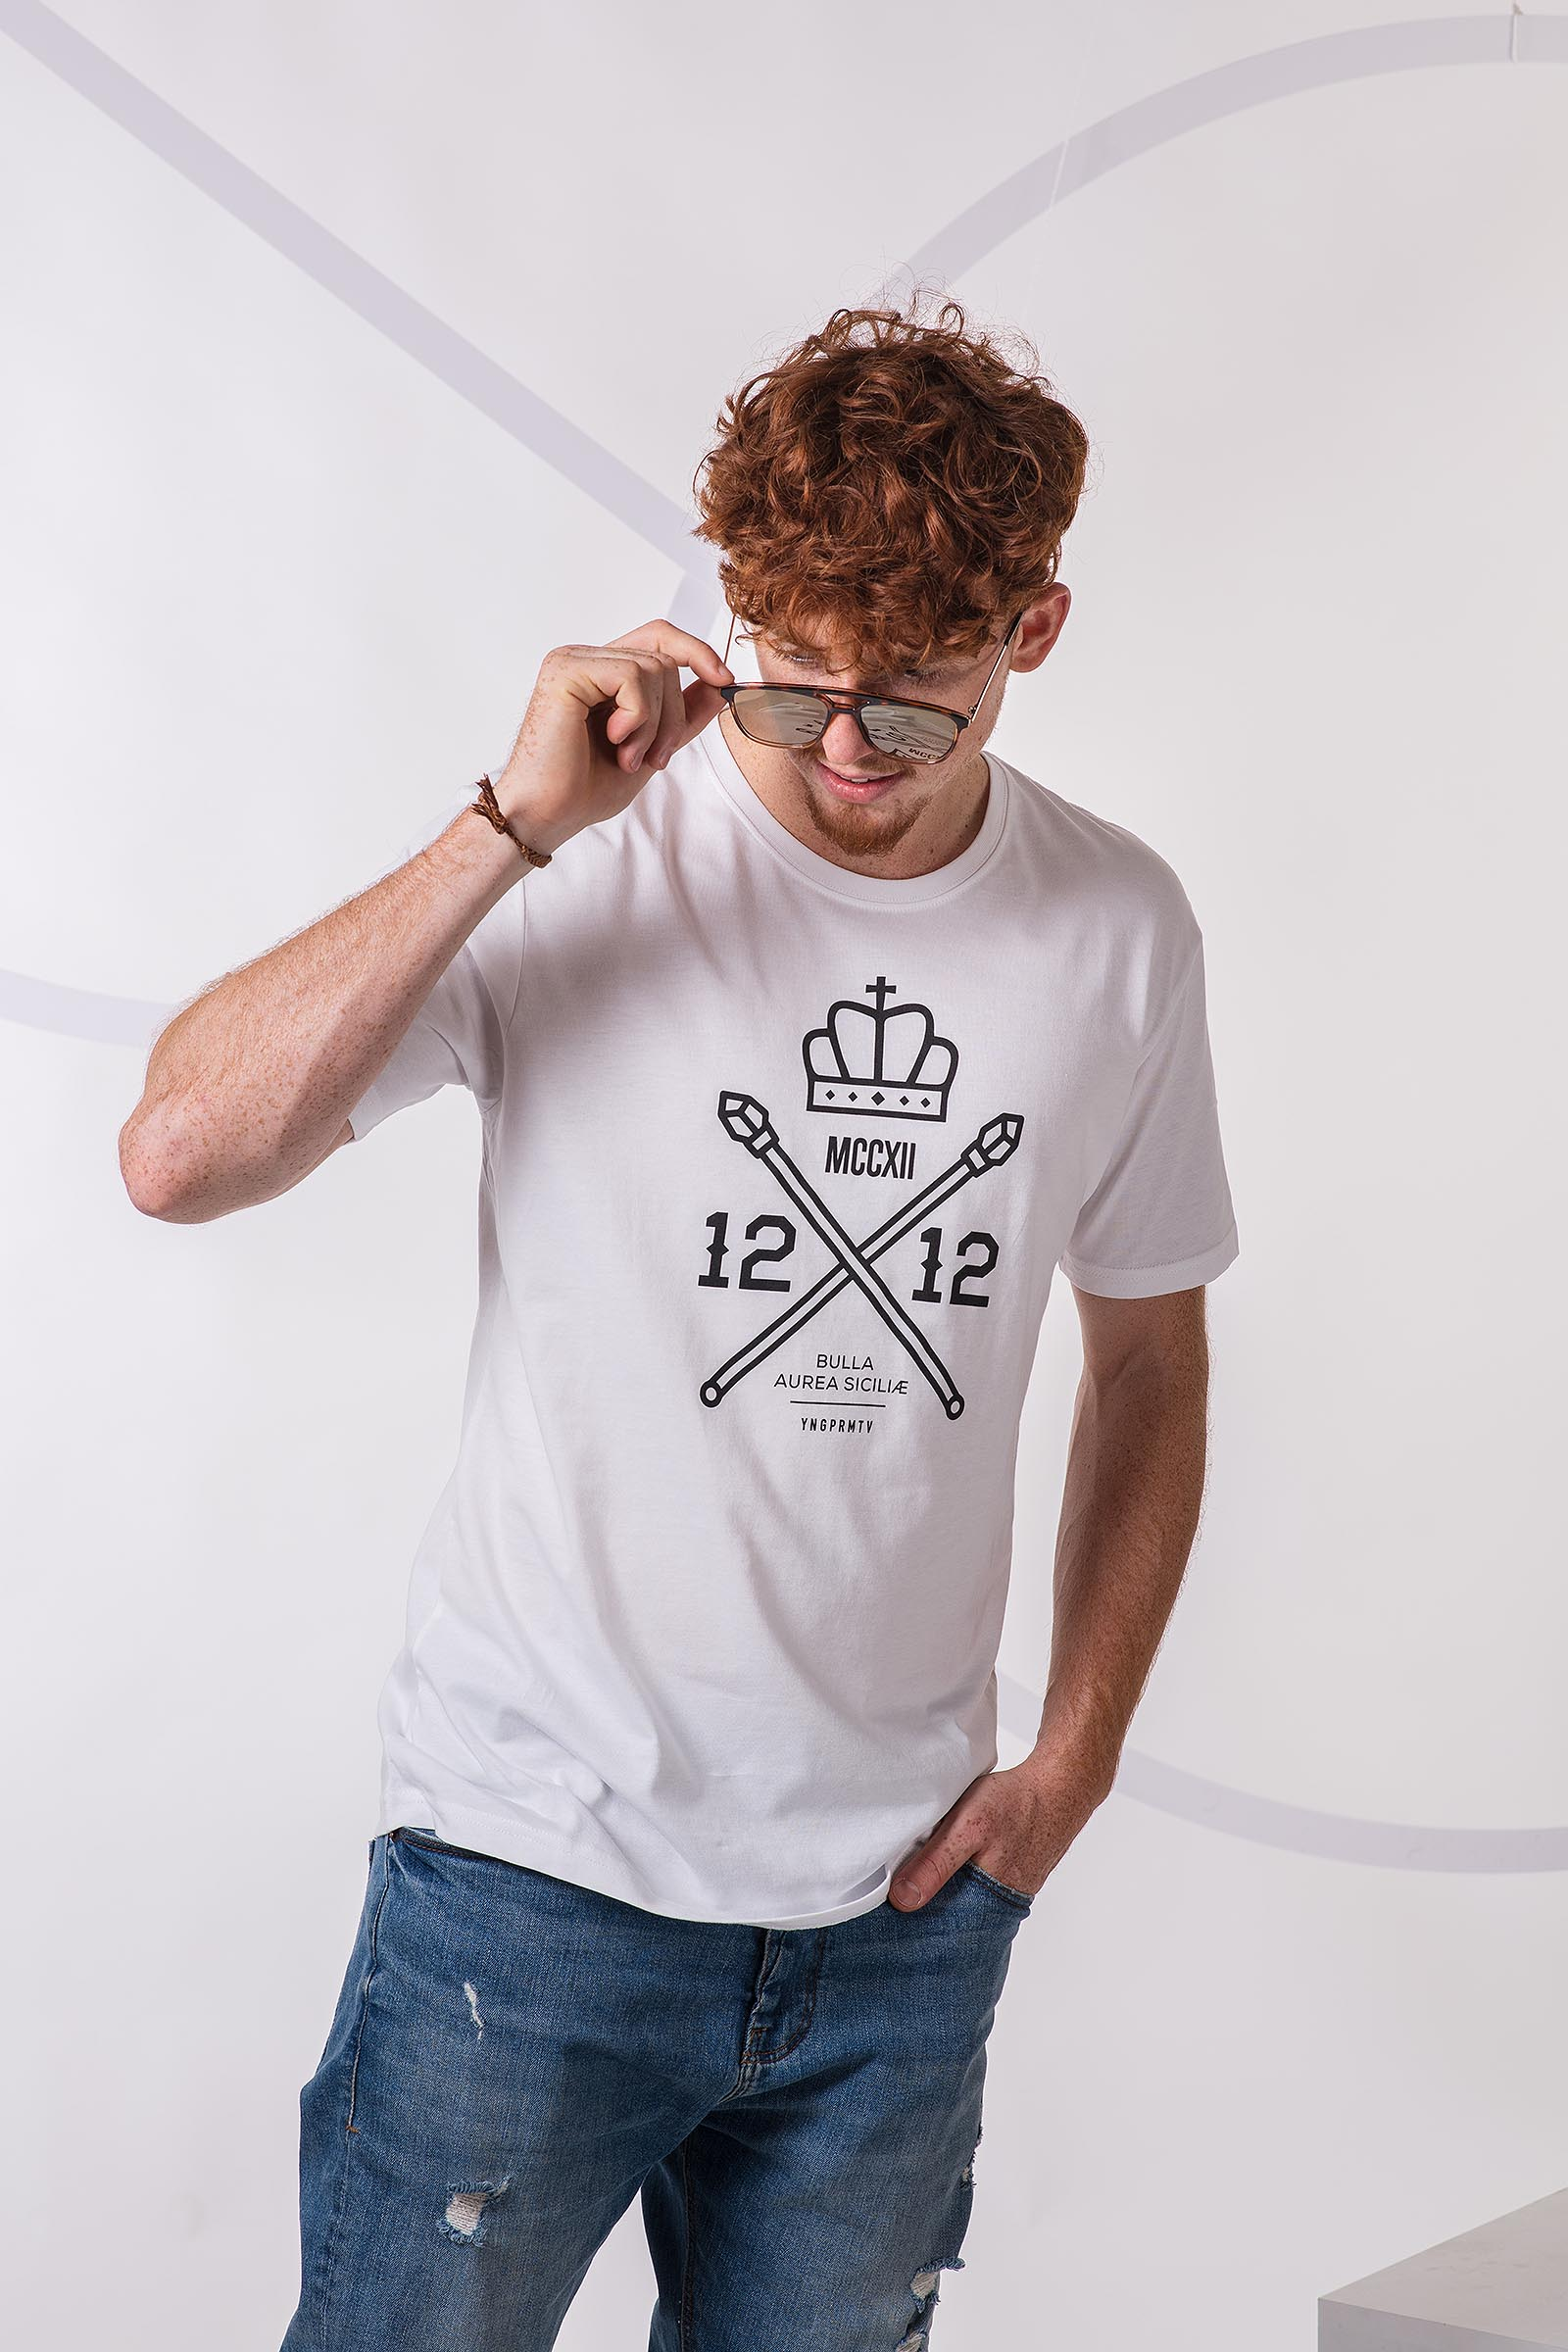 t-shirt for men 1212 white